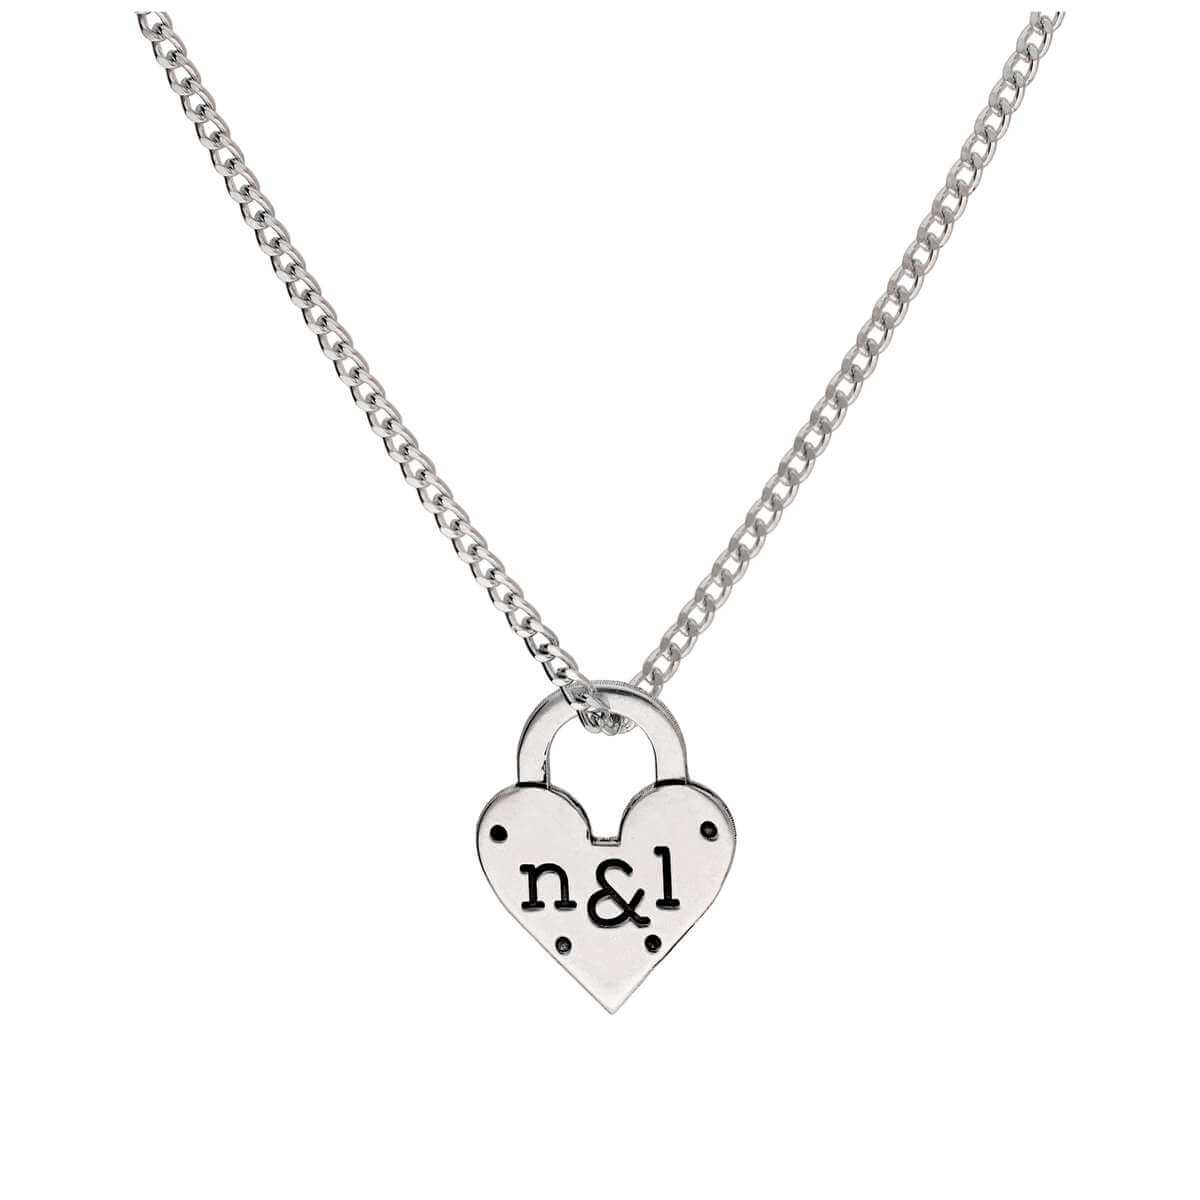 Bespoke Sterling Silver Engraved Heart Padlock Necklace 16-28 Inches